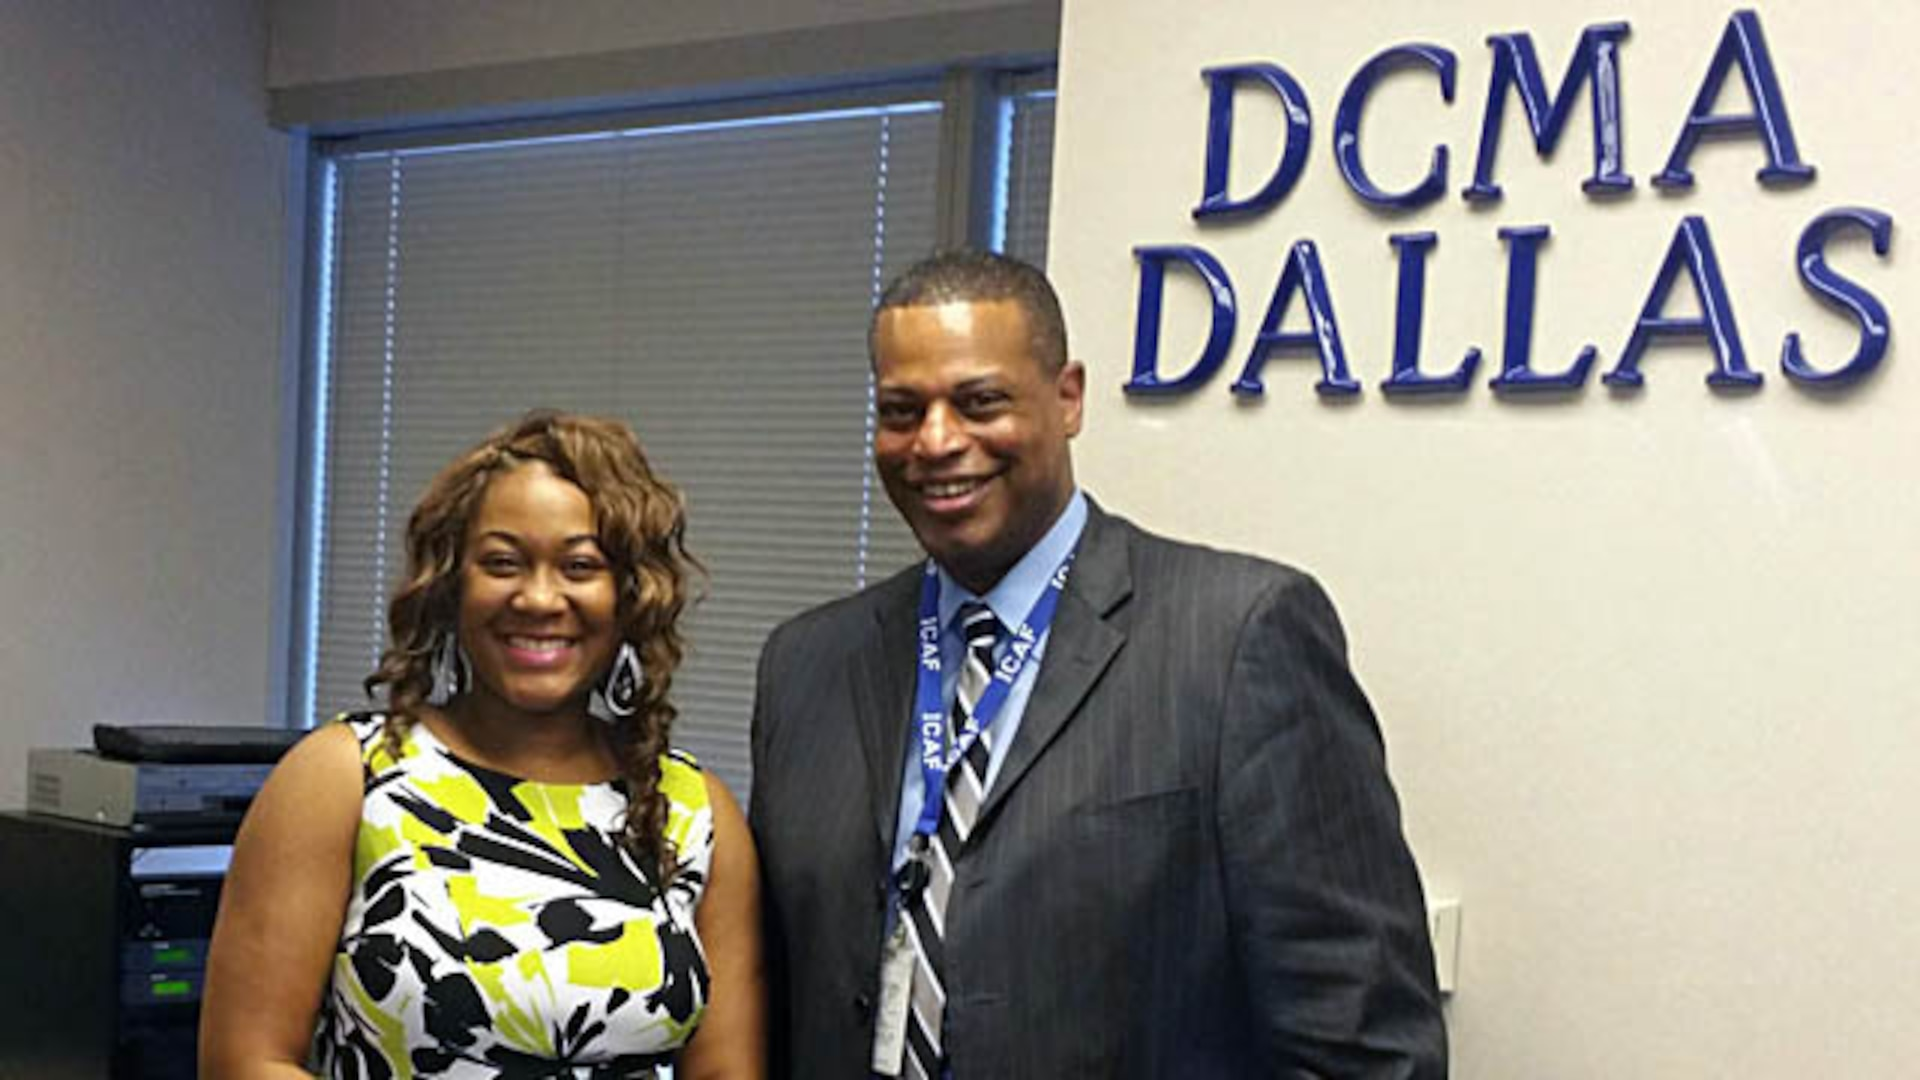 "Erica Benjamin, a Defense Contract Management Agency Dallas quality assurance specialist, shadowed Rodney Mayo, the office's deputy director, and other senior leaders during her recent leadership shadowing experience. She hoped to gain ""insight into senior leader daily tasks and activities."" Programs like this support the agency's Strategic Plan Initiative 3.2.2 — Establishing and Sustaining a Culture of Mentoring."